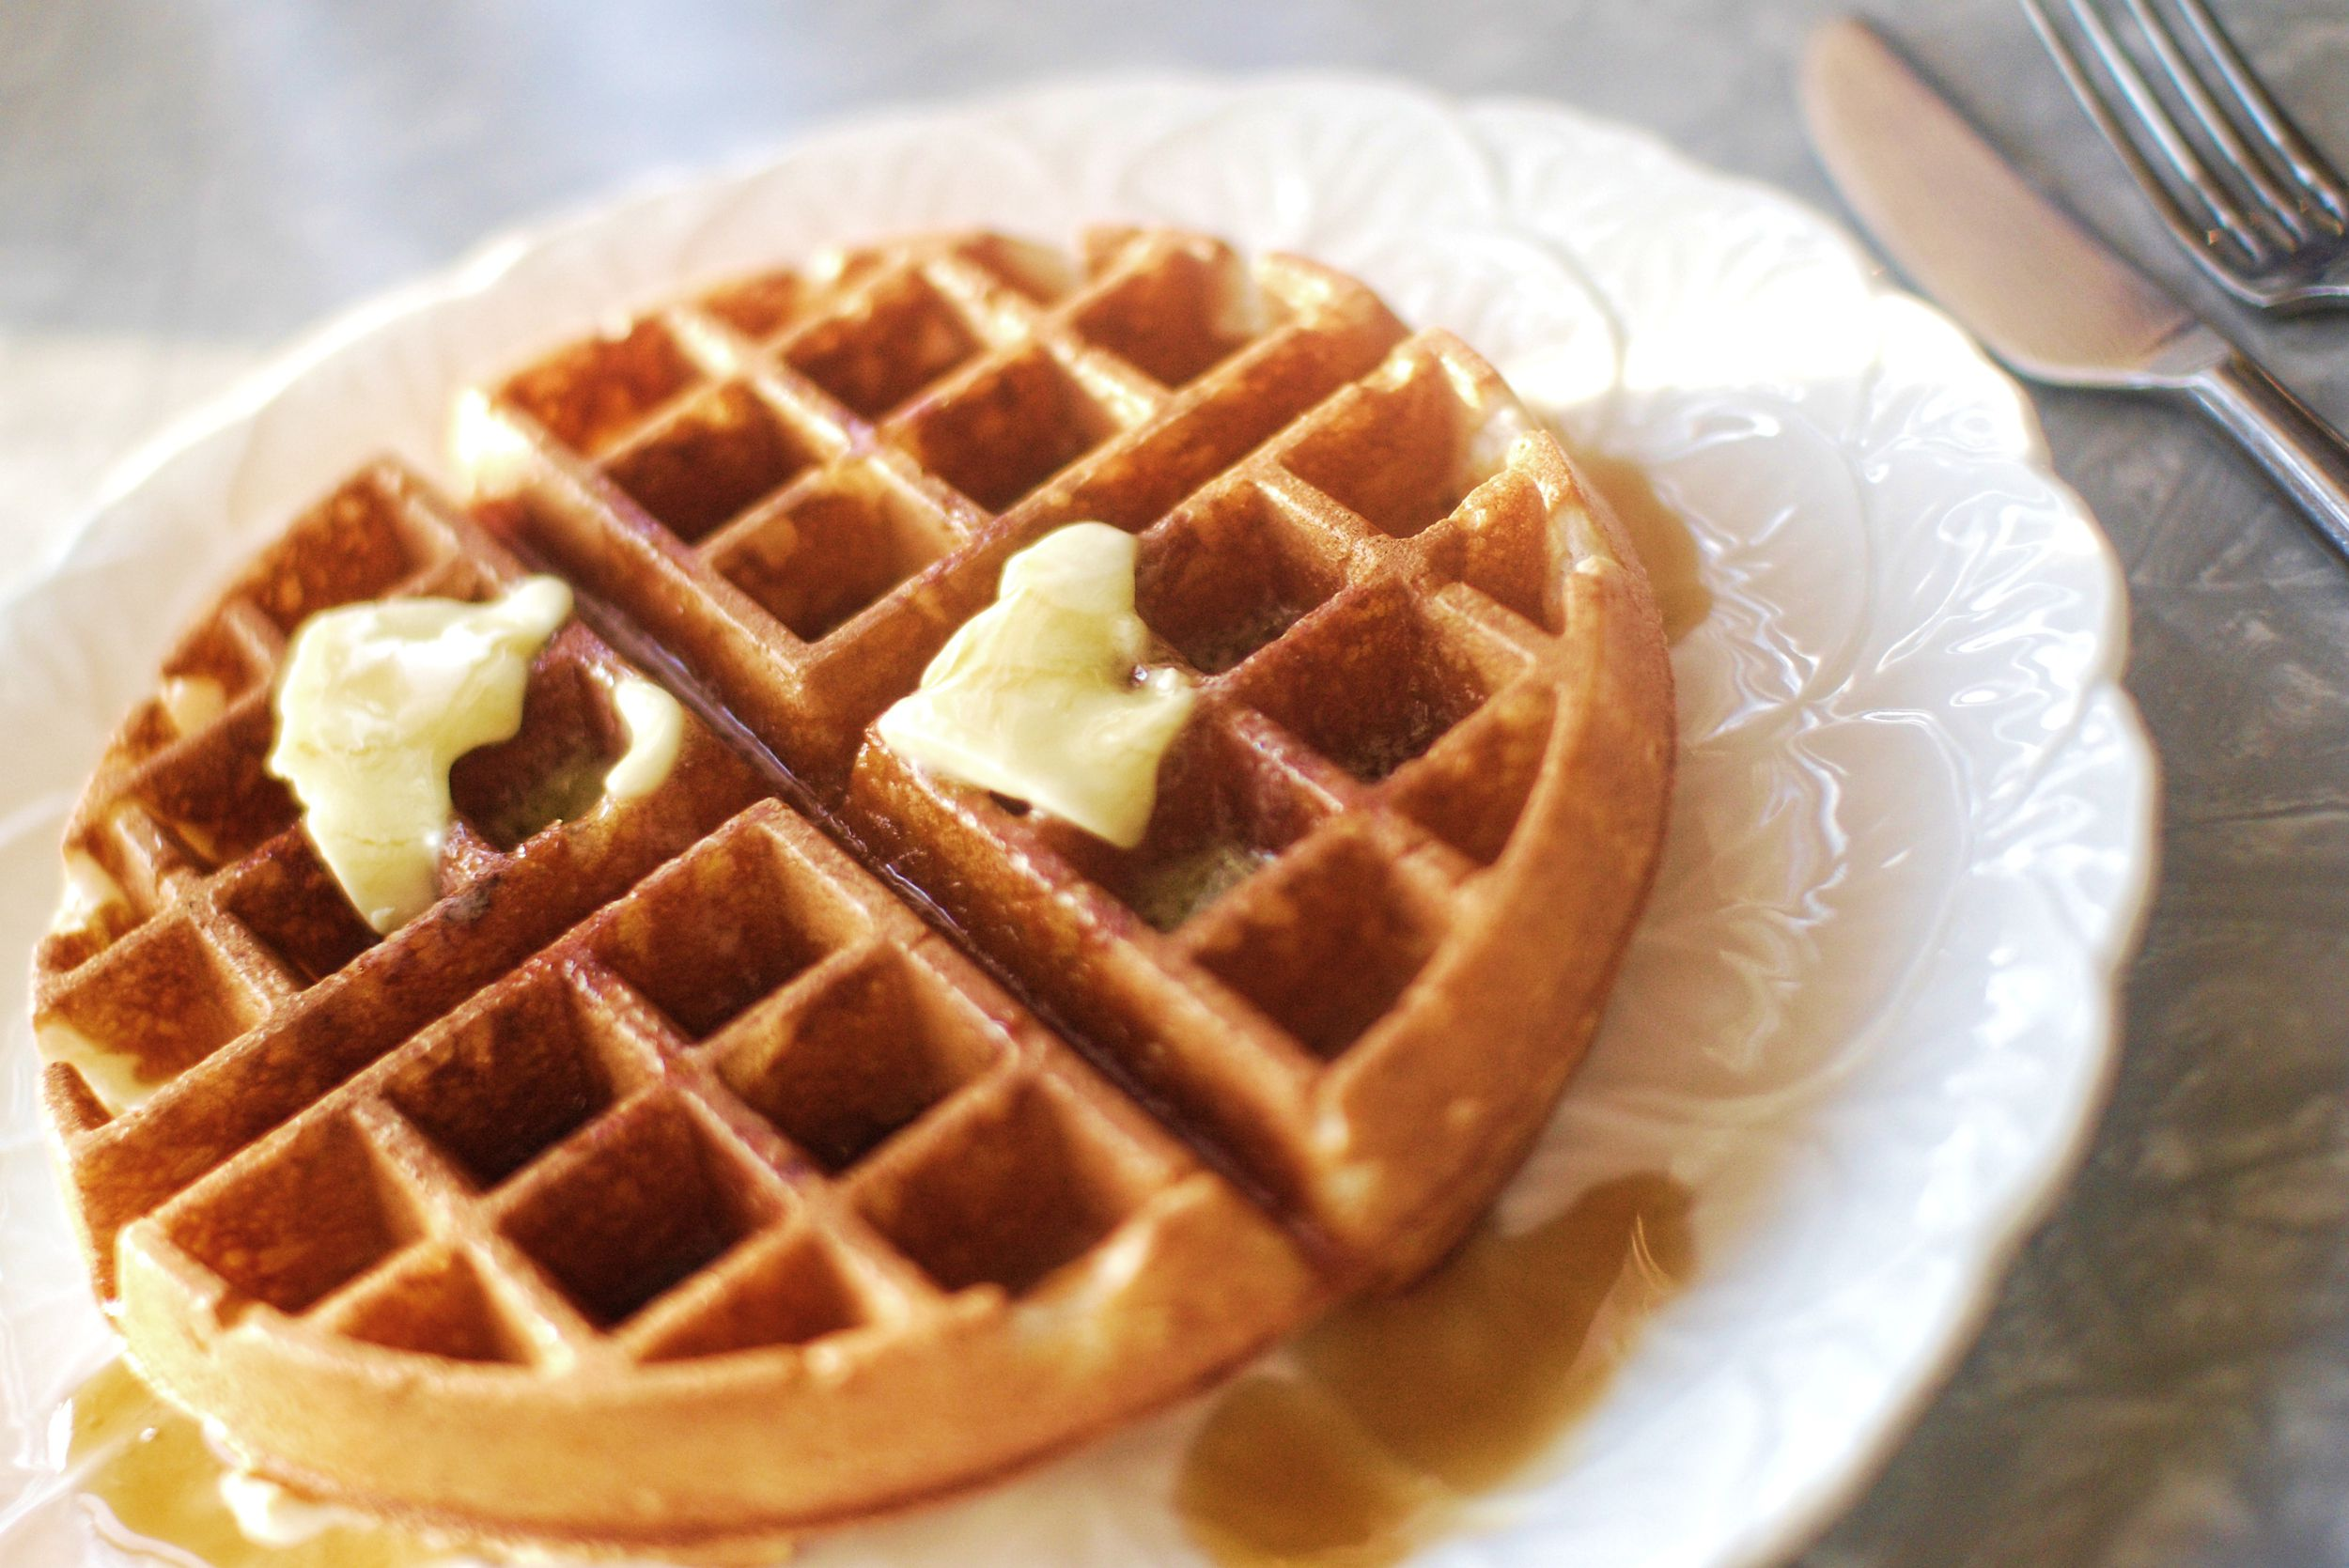 How to Make Extra Fluffy Waffles By Beating Egg Whites